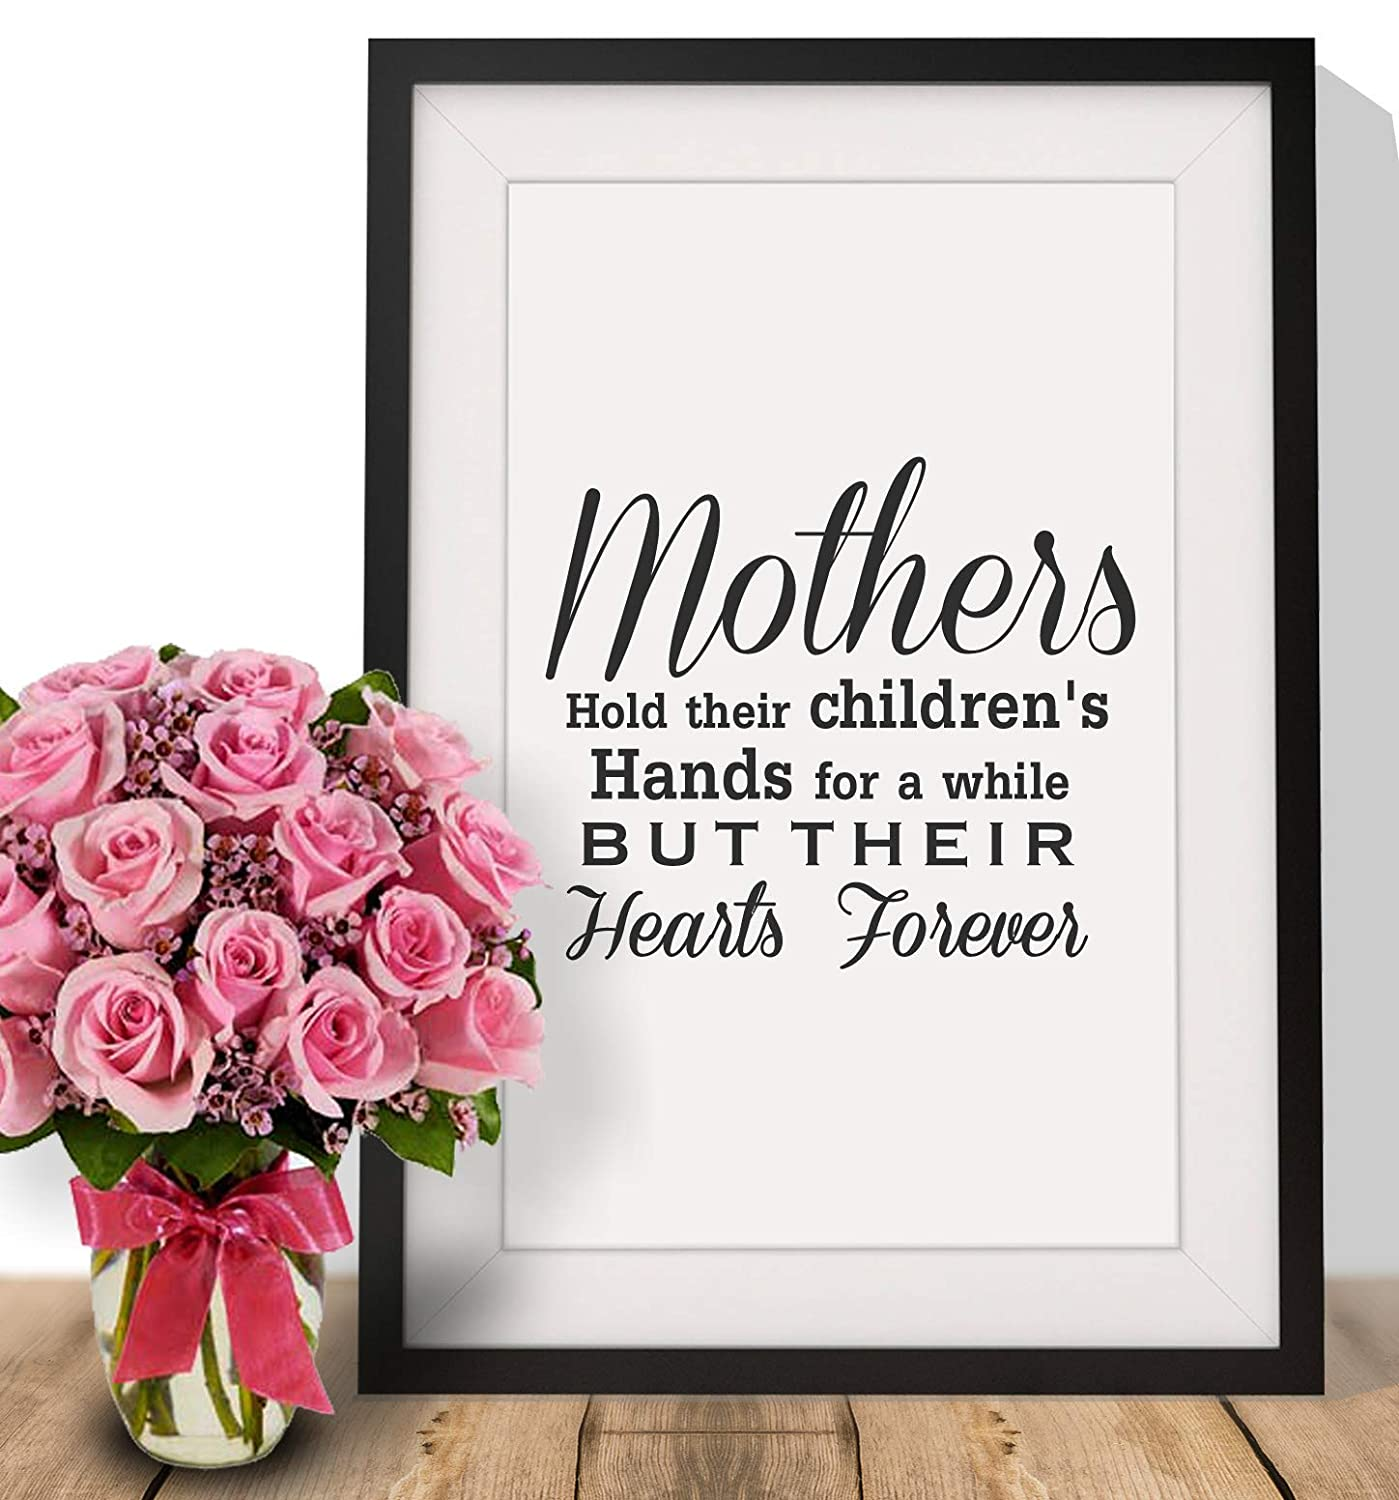 Handmade Mothers Hold Their Childs Hand For A While Heart Forever Framed Wall Art Print with Mount Womens Day Gift Ideas For Mum Mam Mummy Mammy Step mum on Mothers Day Birthday 12 x 10